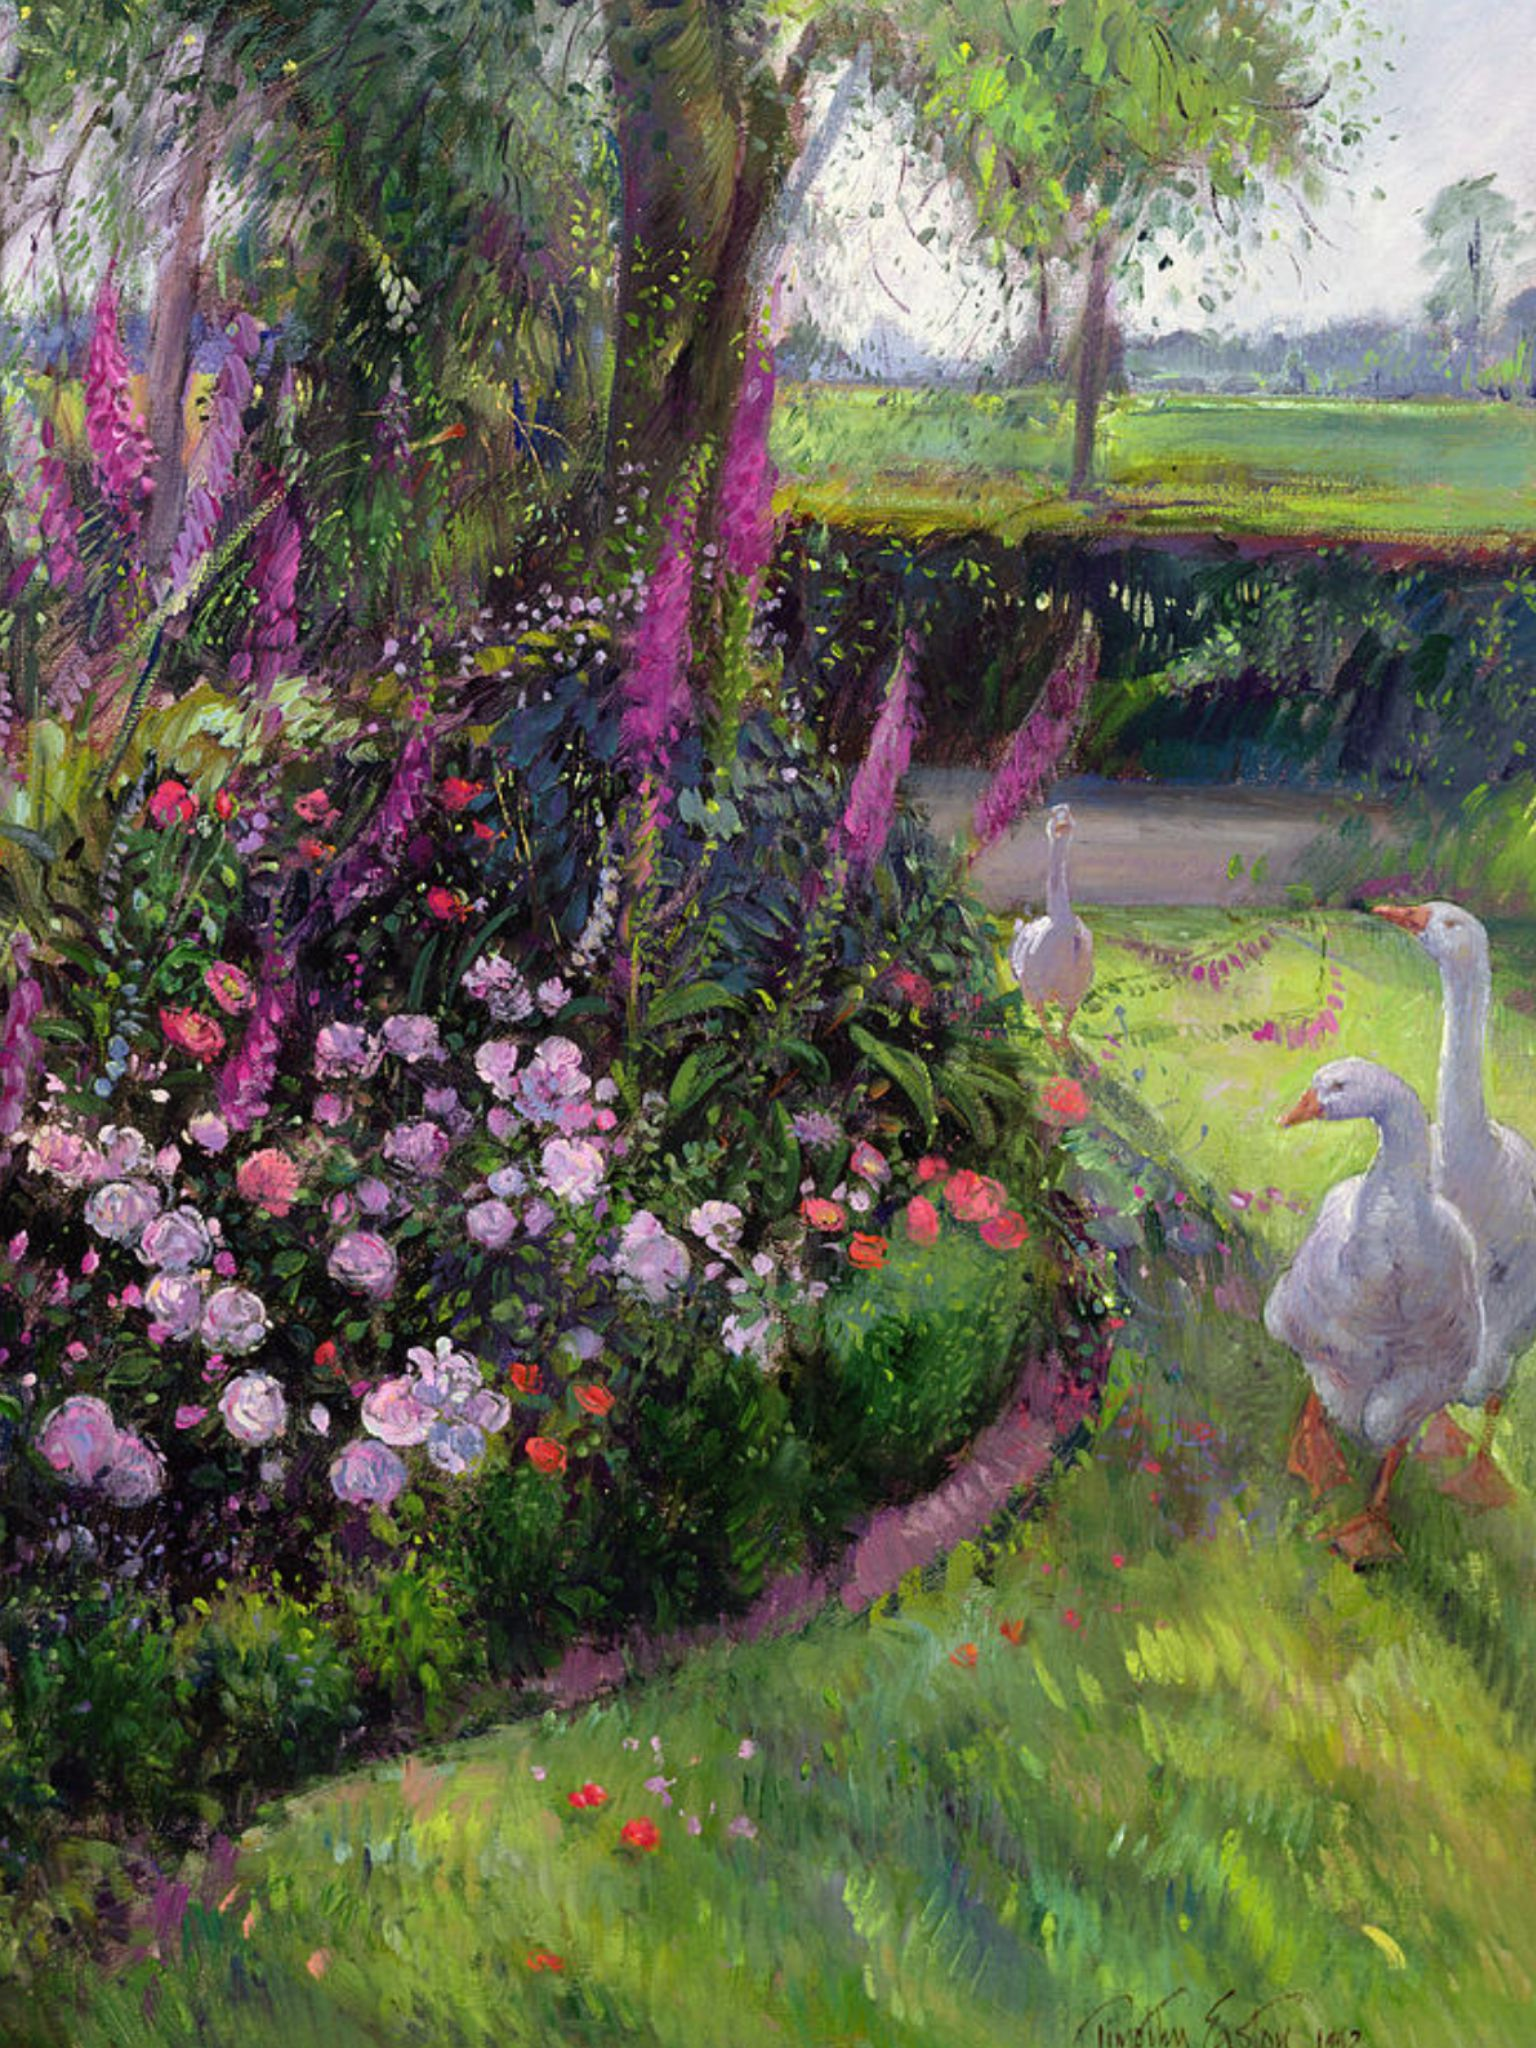 Garden bed with trees  ROSE BED AND GEESE  Painting  Pinterest